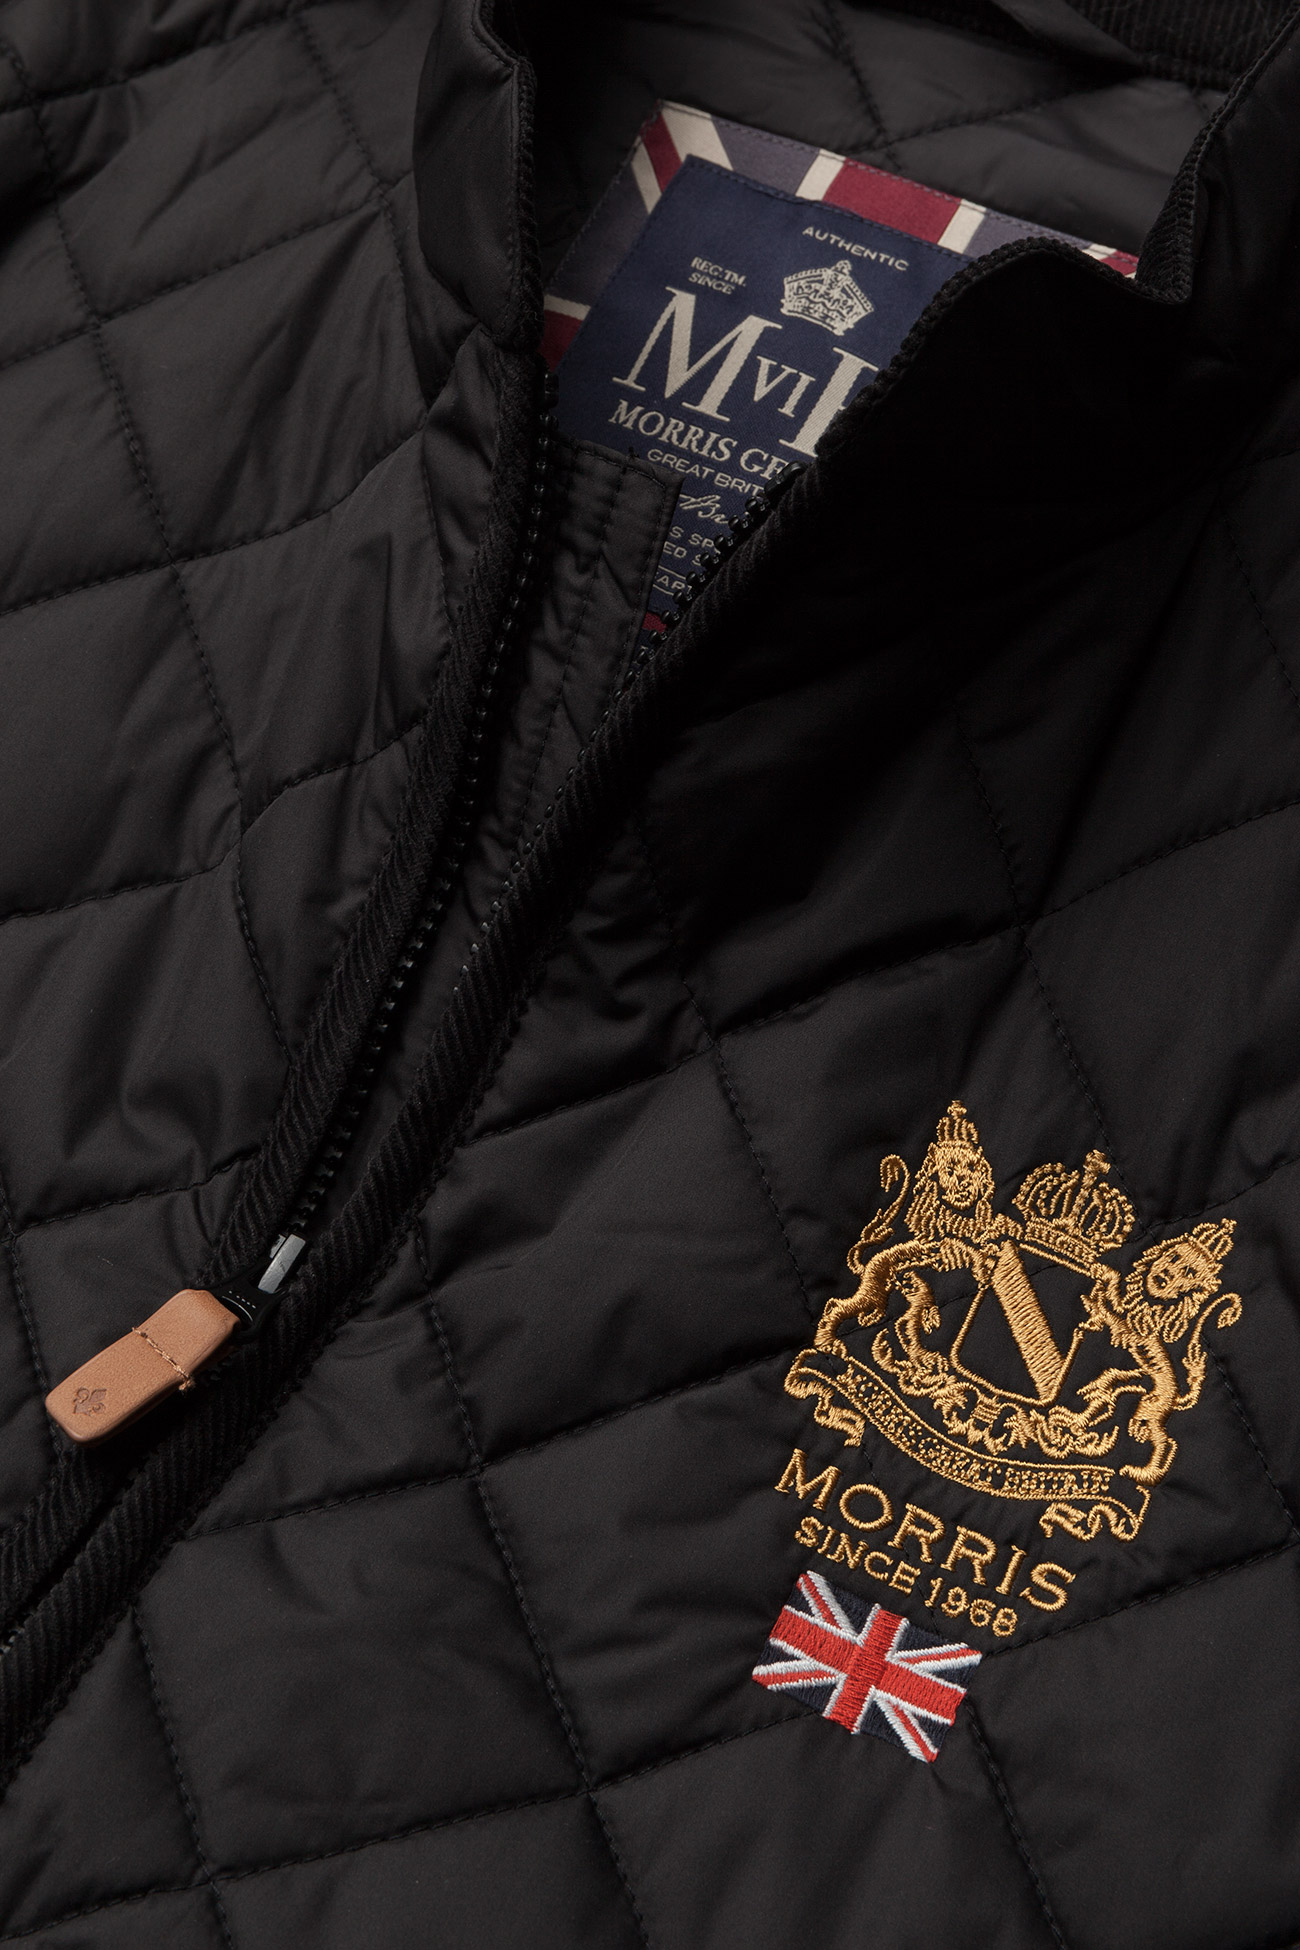 Quilted Quilted JacketblackMorris Quilted Trenton JacketblackMorris Trenton Trenton Quilted Trenton JacketblackMorris Quilted Trenton JacketblackMorris 5jLq3RA4